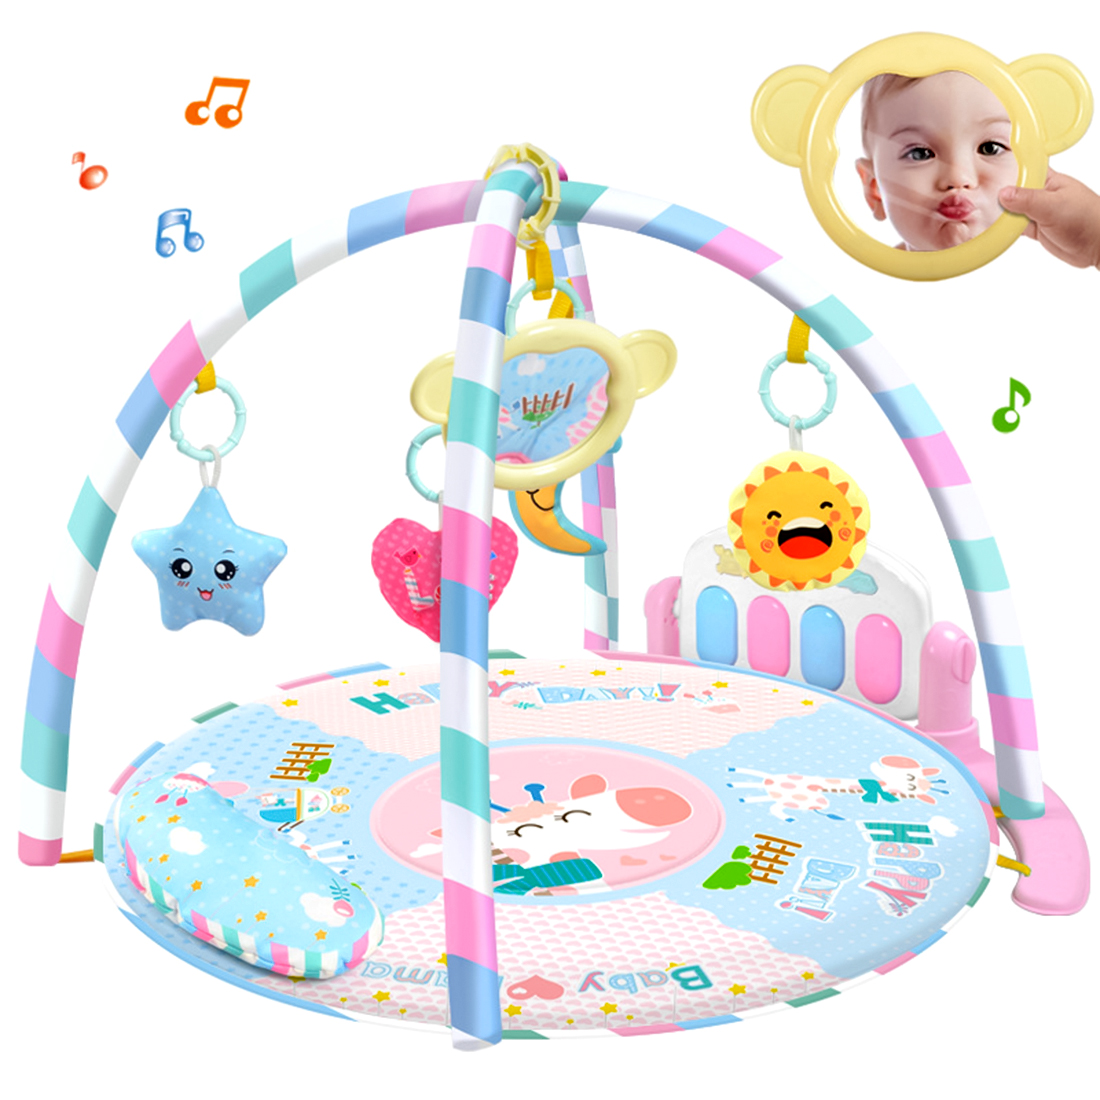 RC Play Mat Kids Rug Educational Puzzle Activity Fitness Rug Musical Piano Game Toys With Light For Baby Infant -Updated Version baby kids toy musical piano activity cube play center with lights mulitfunctions